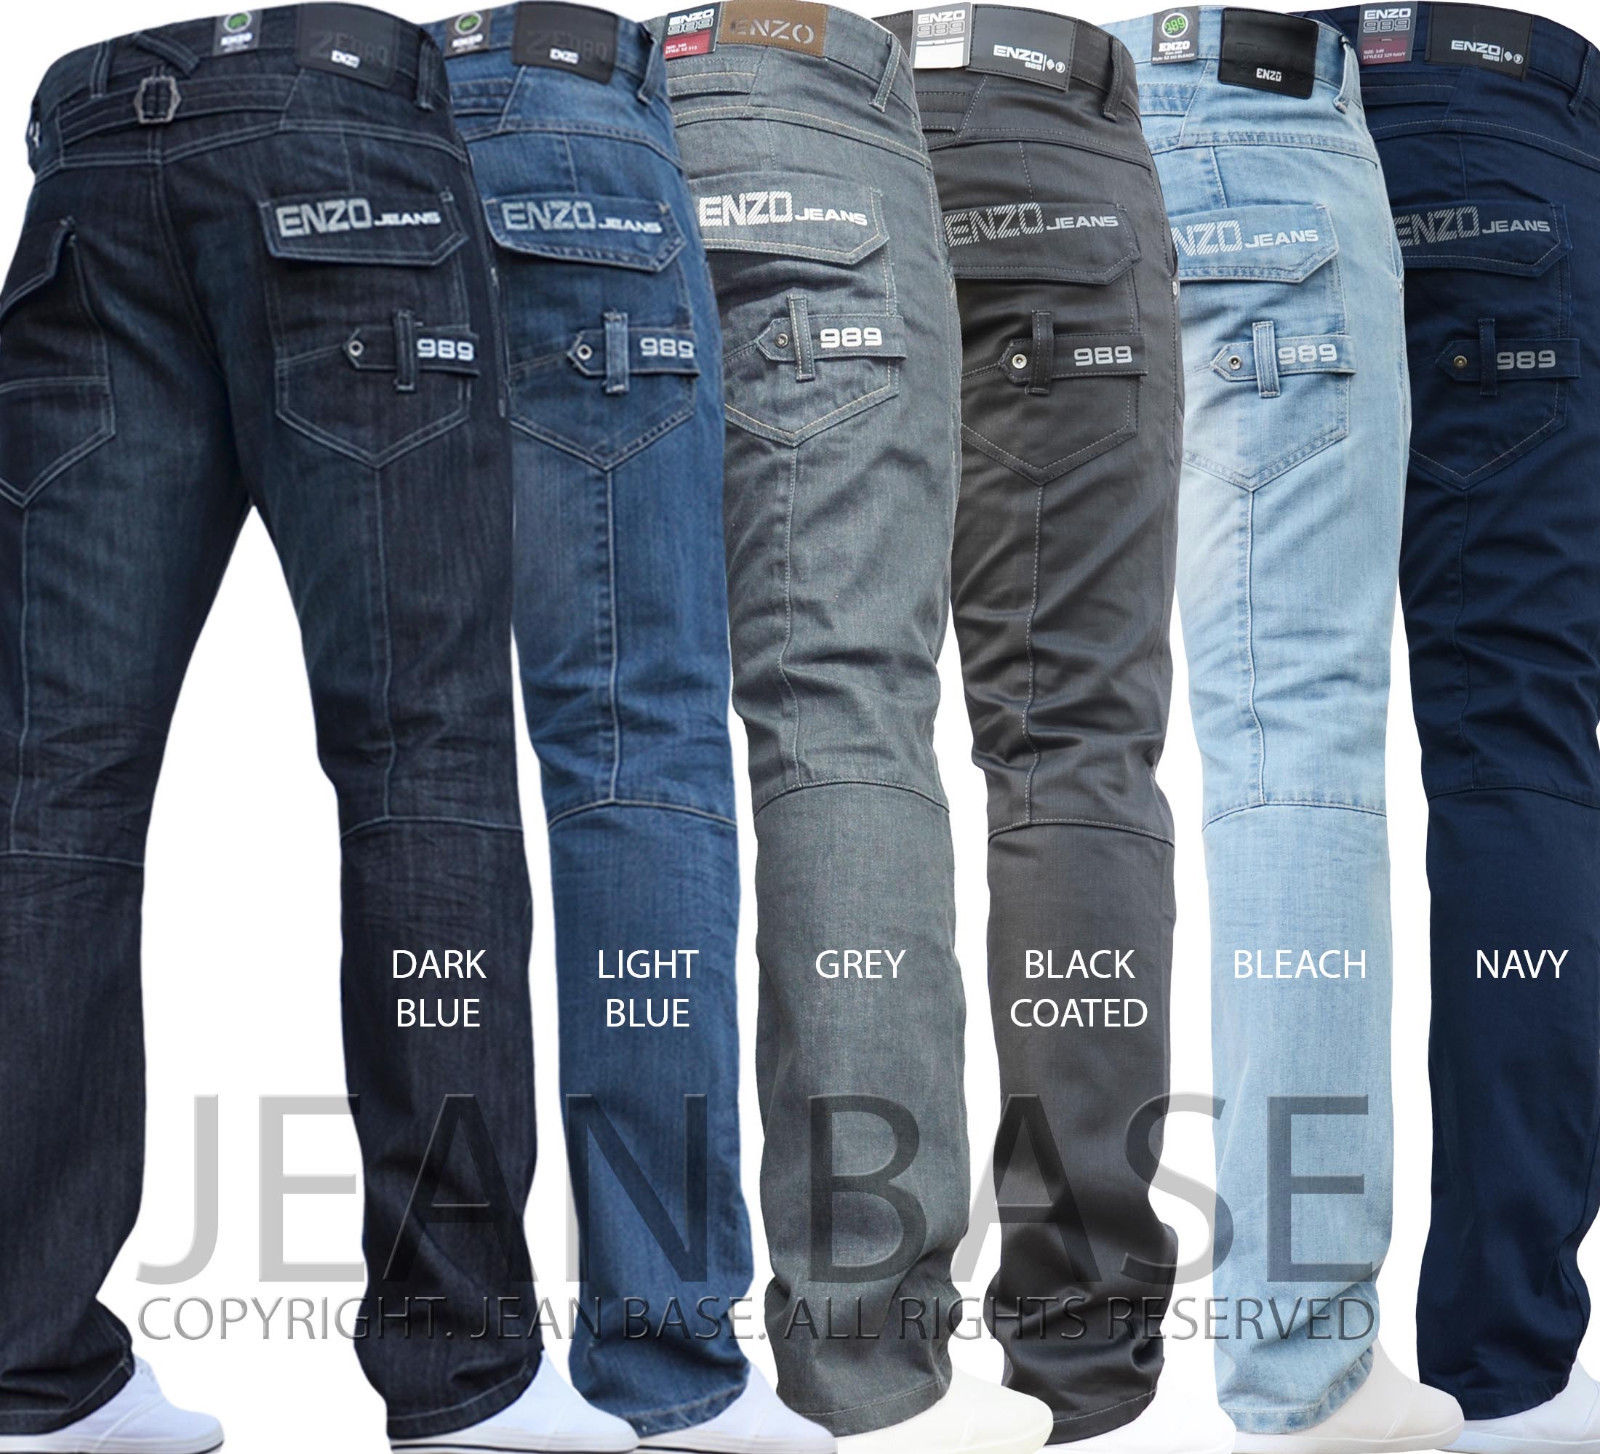 Only $17.99 - Name Brand Jeans - Happy Birthday Gift Idea For Him: